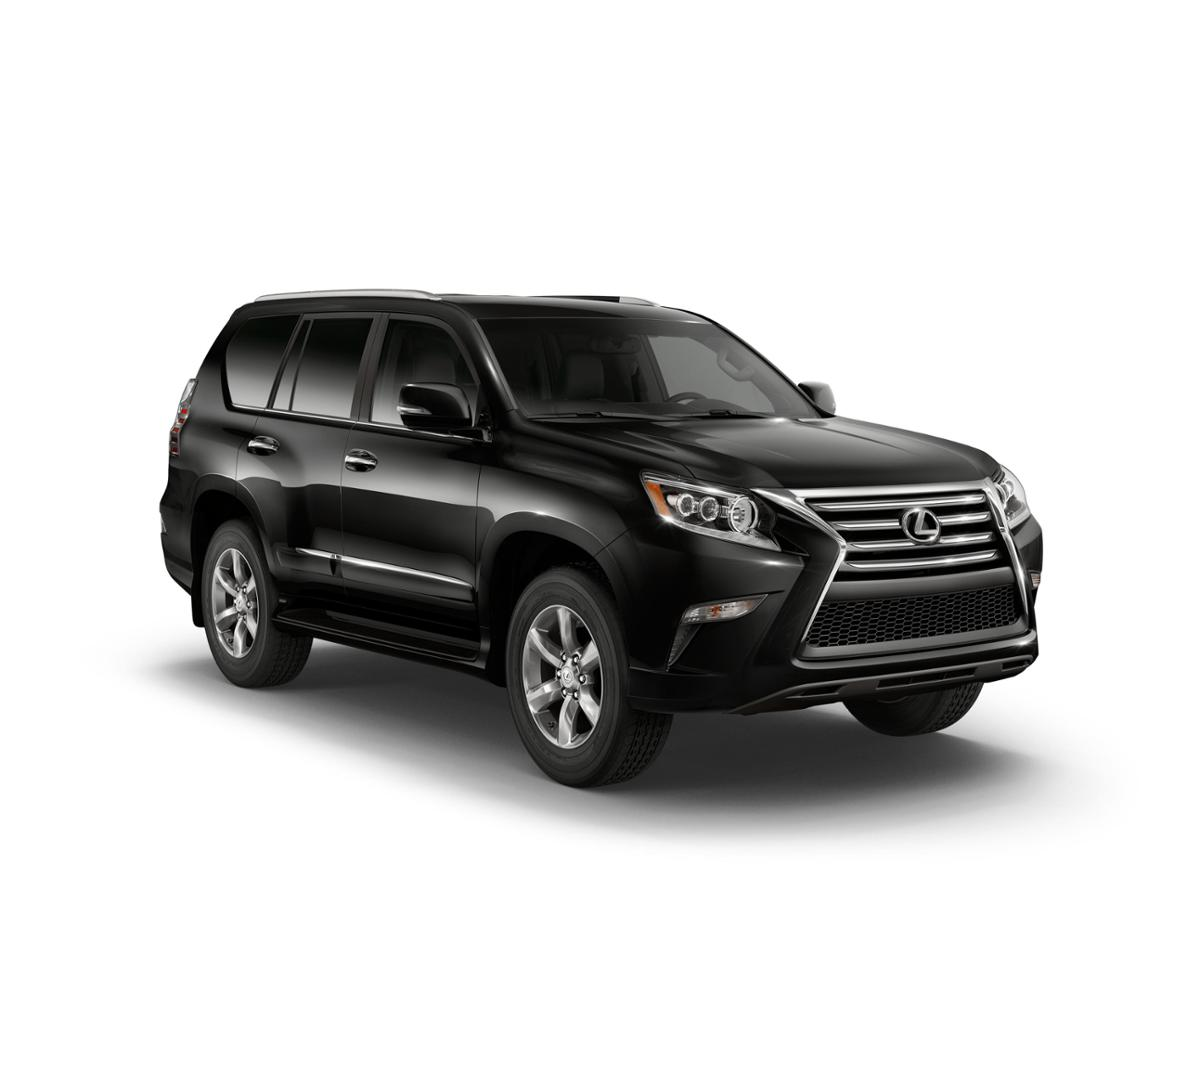 2018 Lexus GX 460 Vehicle Photo in Appleton, WI 54913